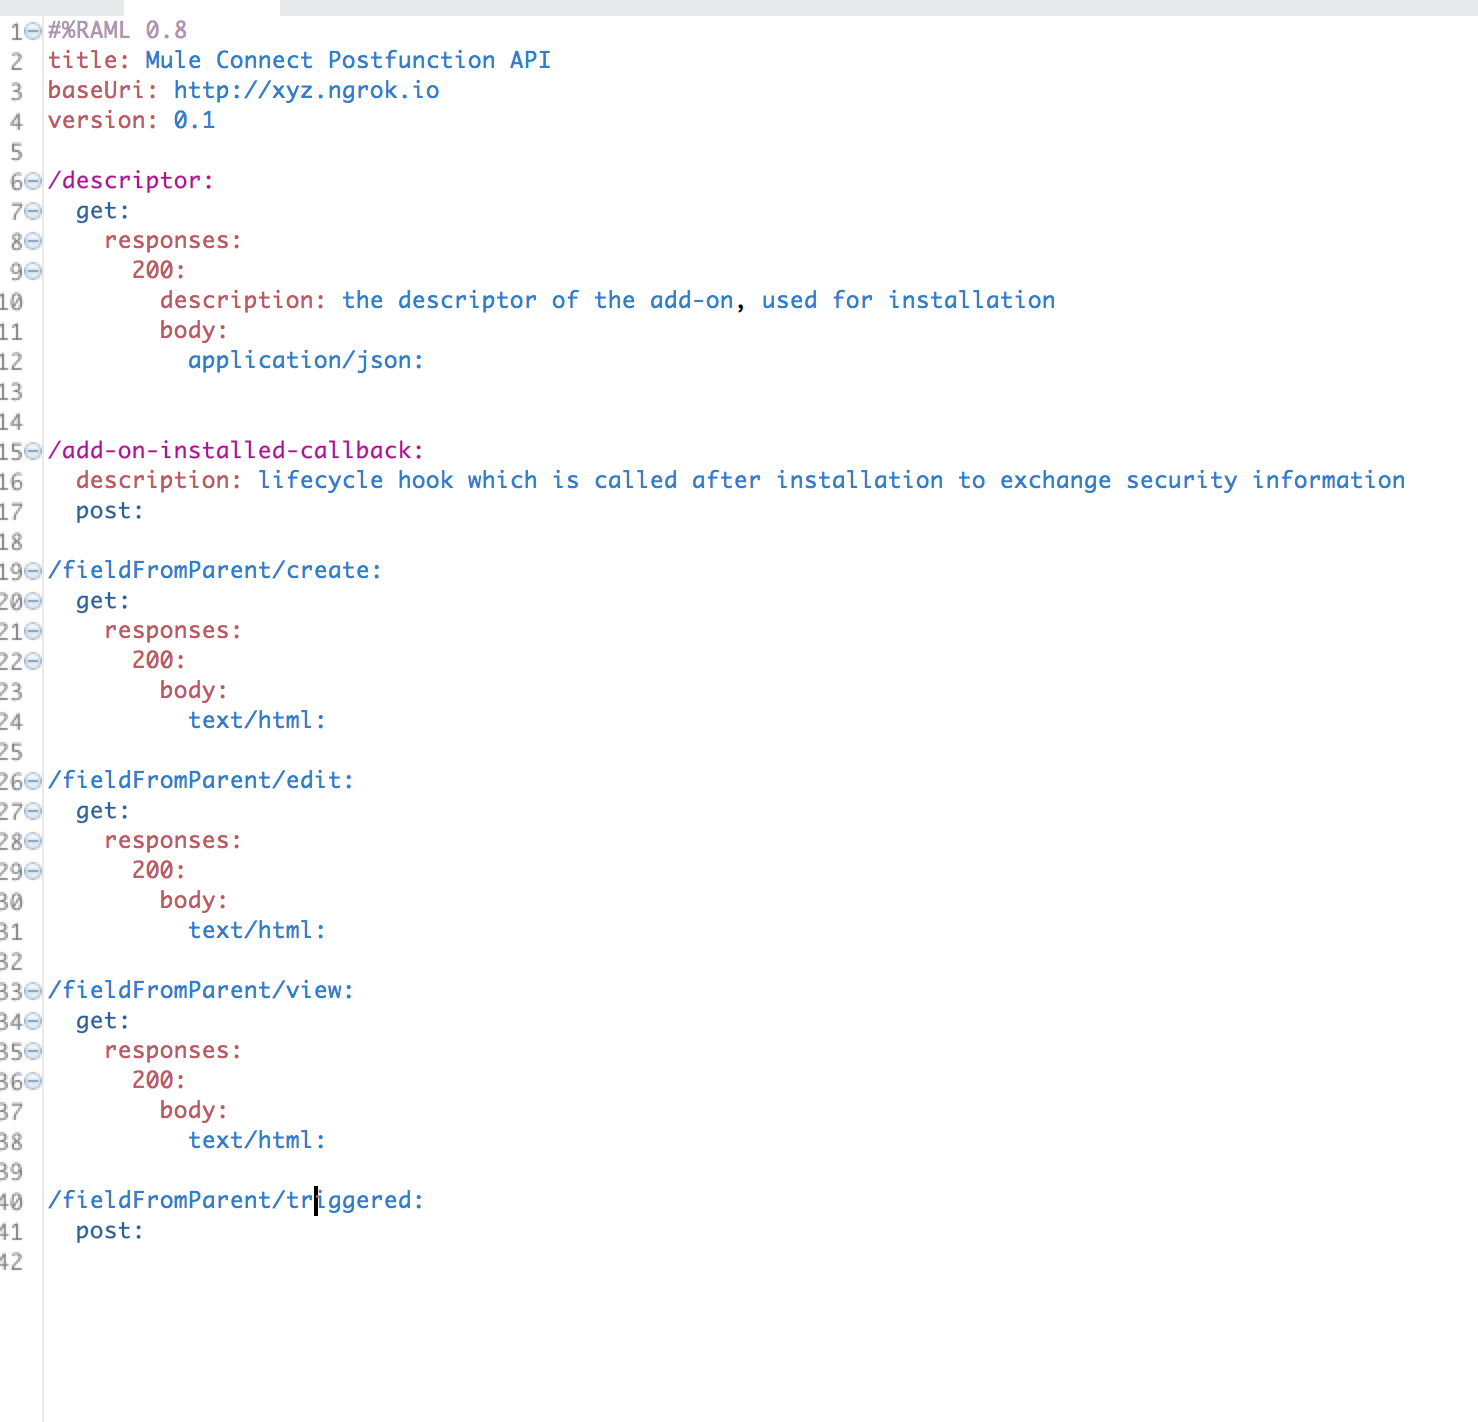 first draft of the API